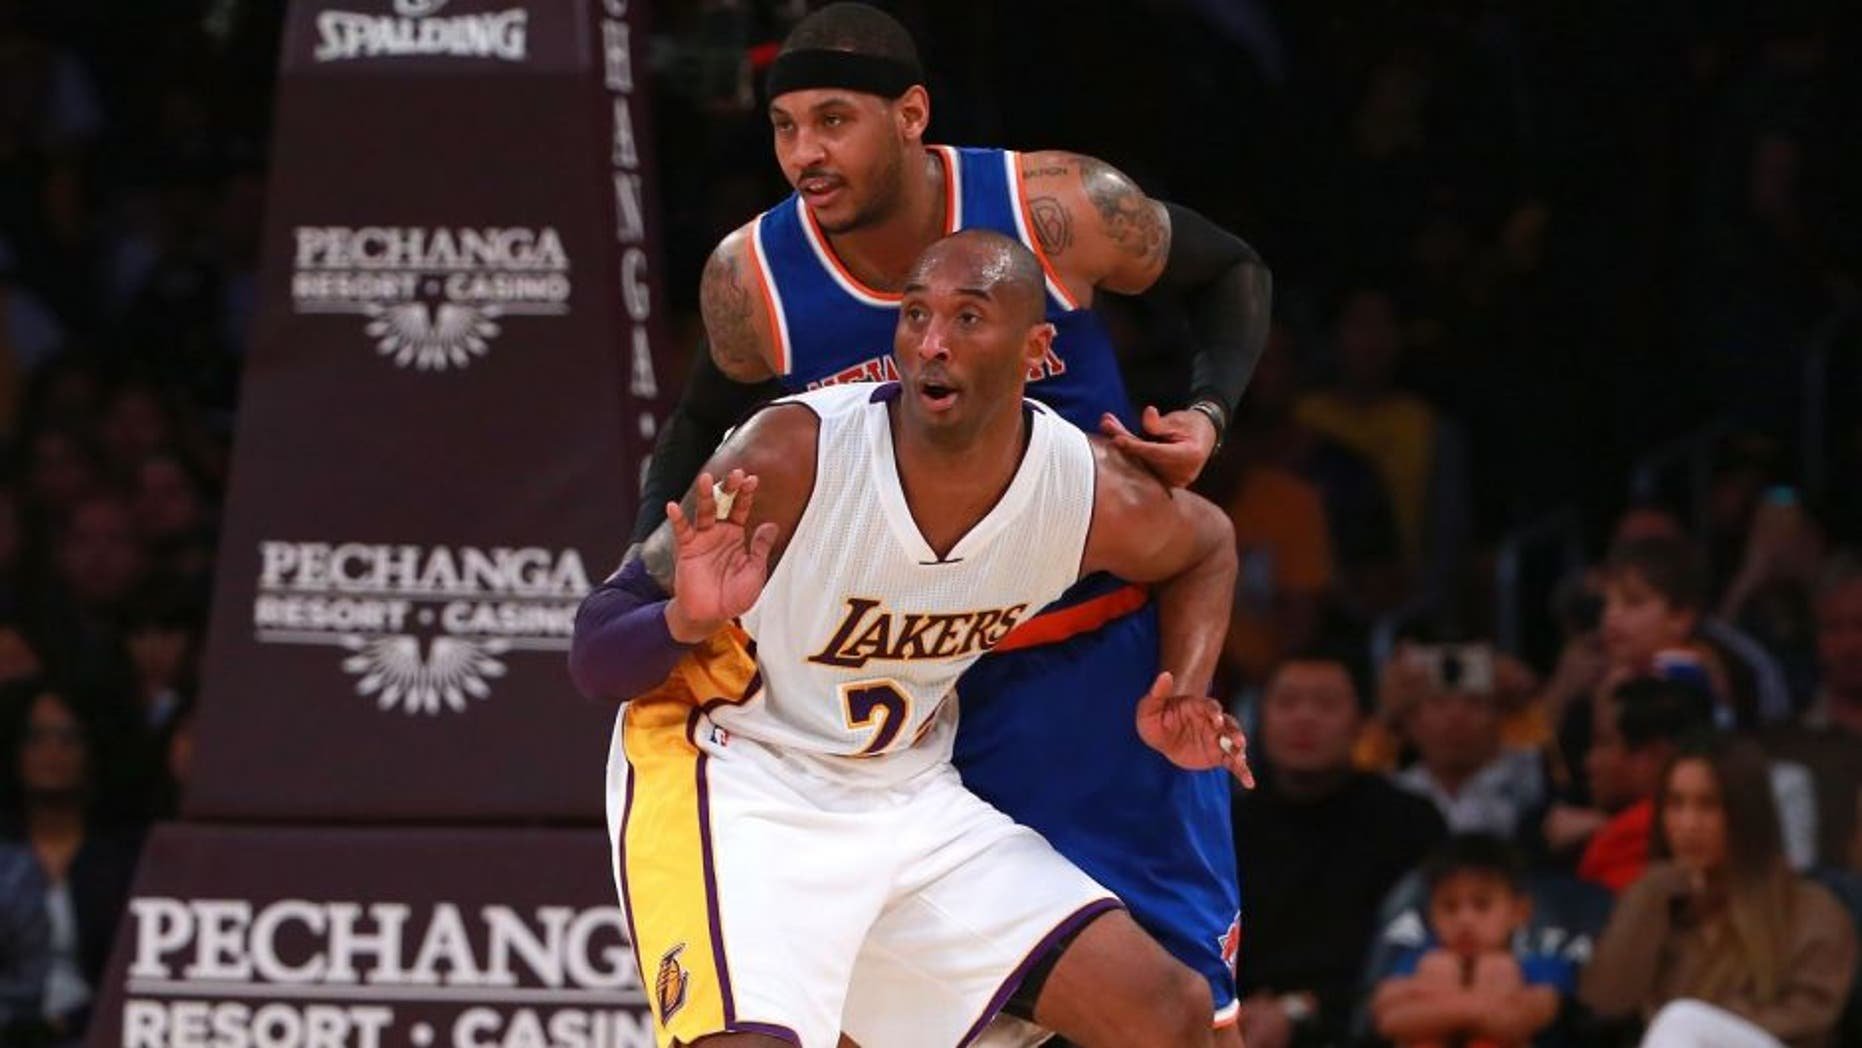 during the NBA game at Staples Center on March 13, 2016 in Los Angeles, California. NOTE TO USER: User expressly acknowledges and agrees that, by downloading and or using this photograph, User is consenting to the terms and conditions of the Getty Images License Agreement.